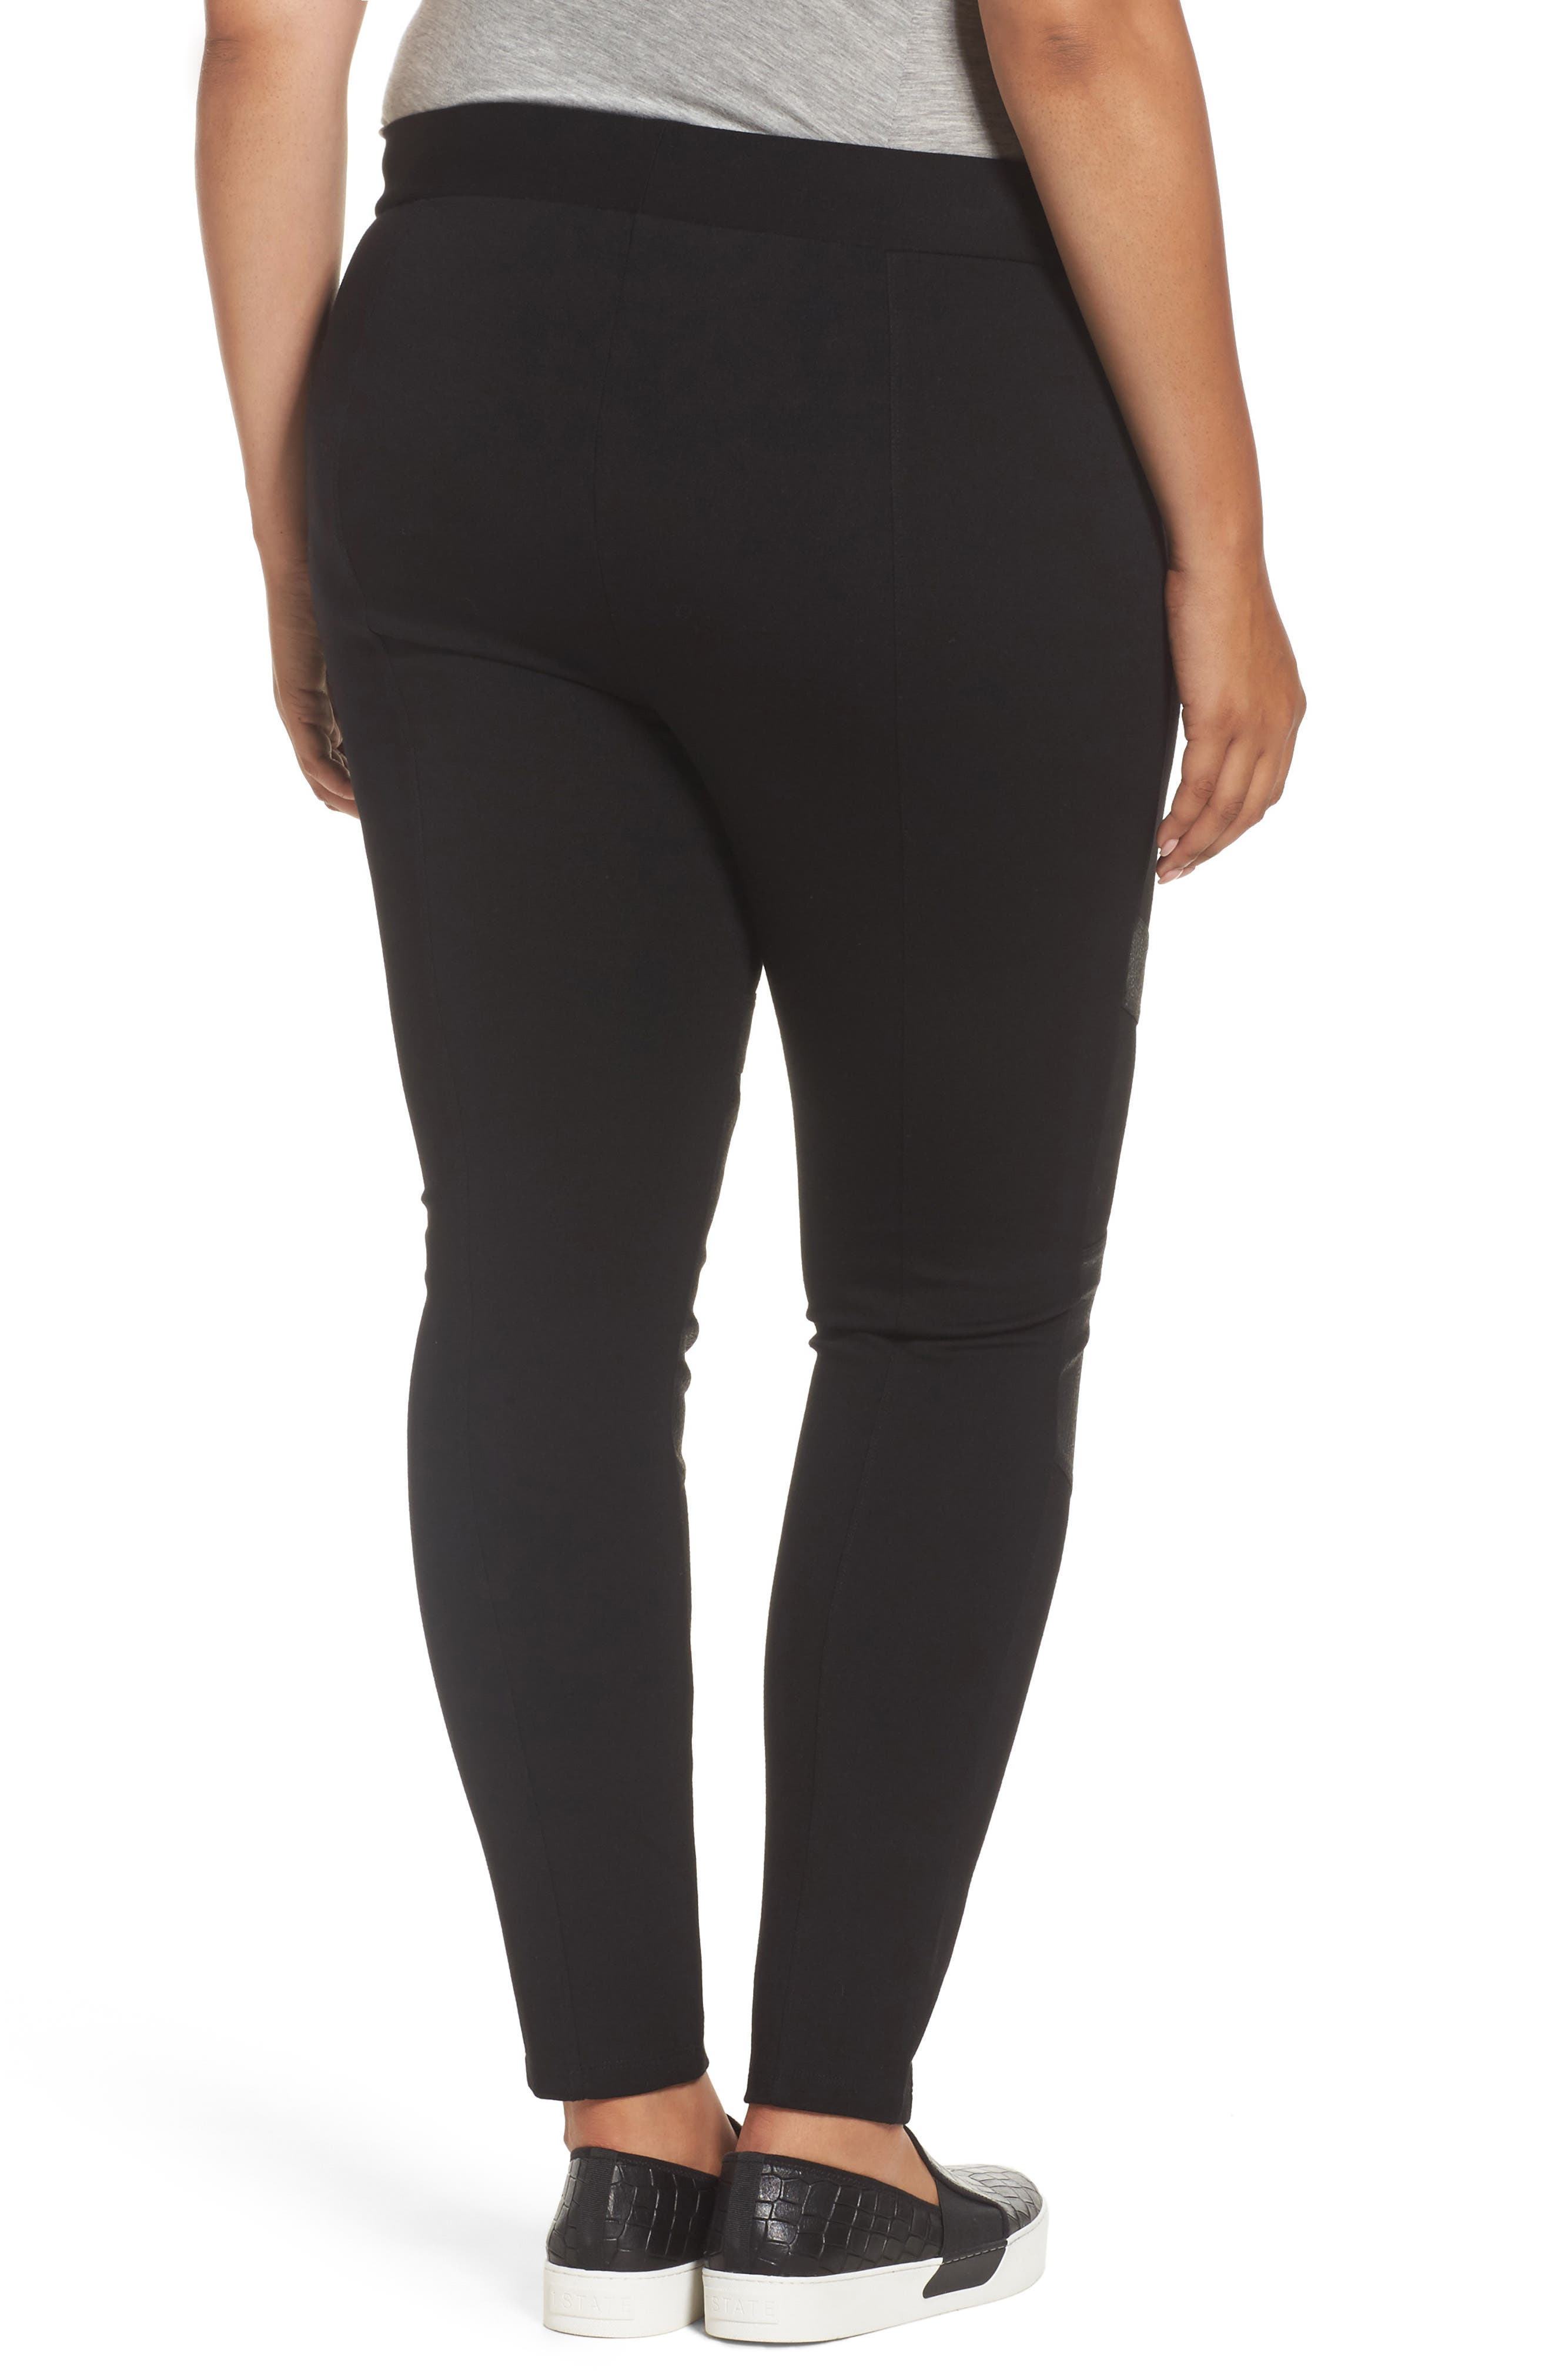 TWO BY VINCE CAMUTO,                             High Rise Lacquer Inset Moto Leggings,                             Alternate thumbnail 2, color,                             RICH BLACK